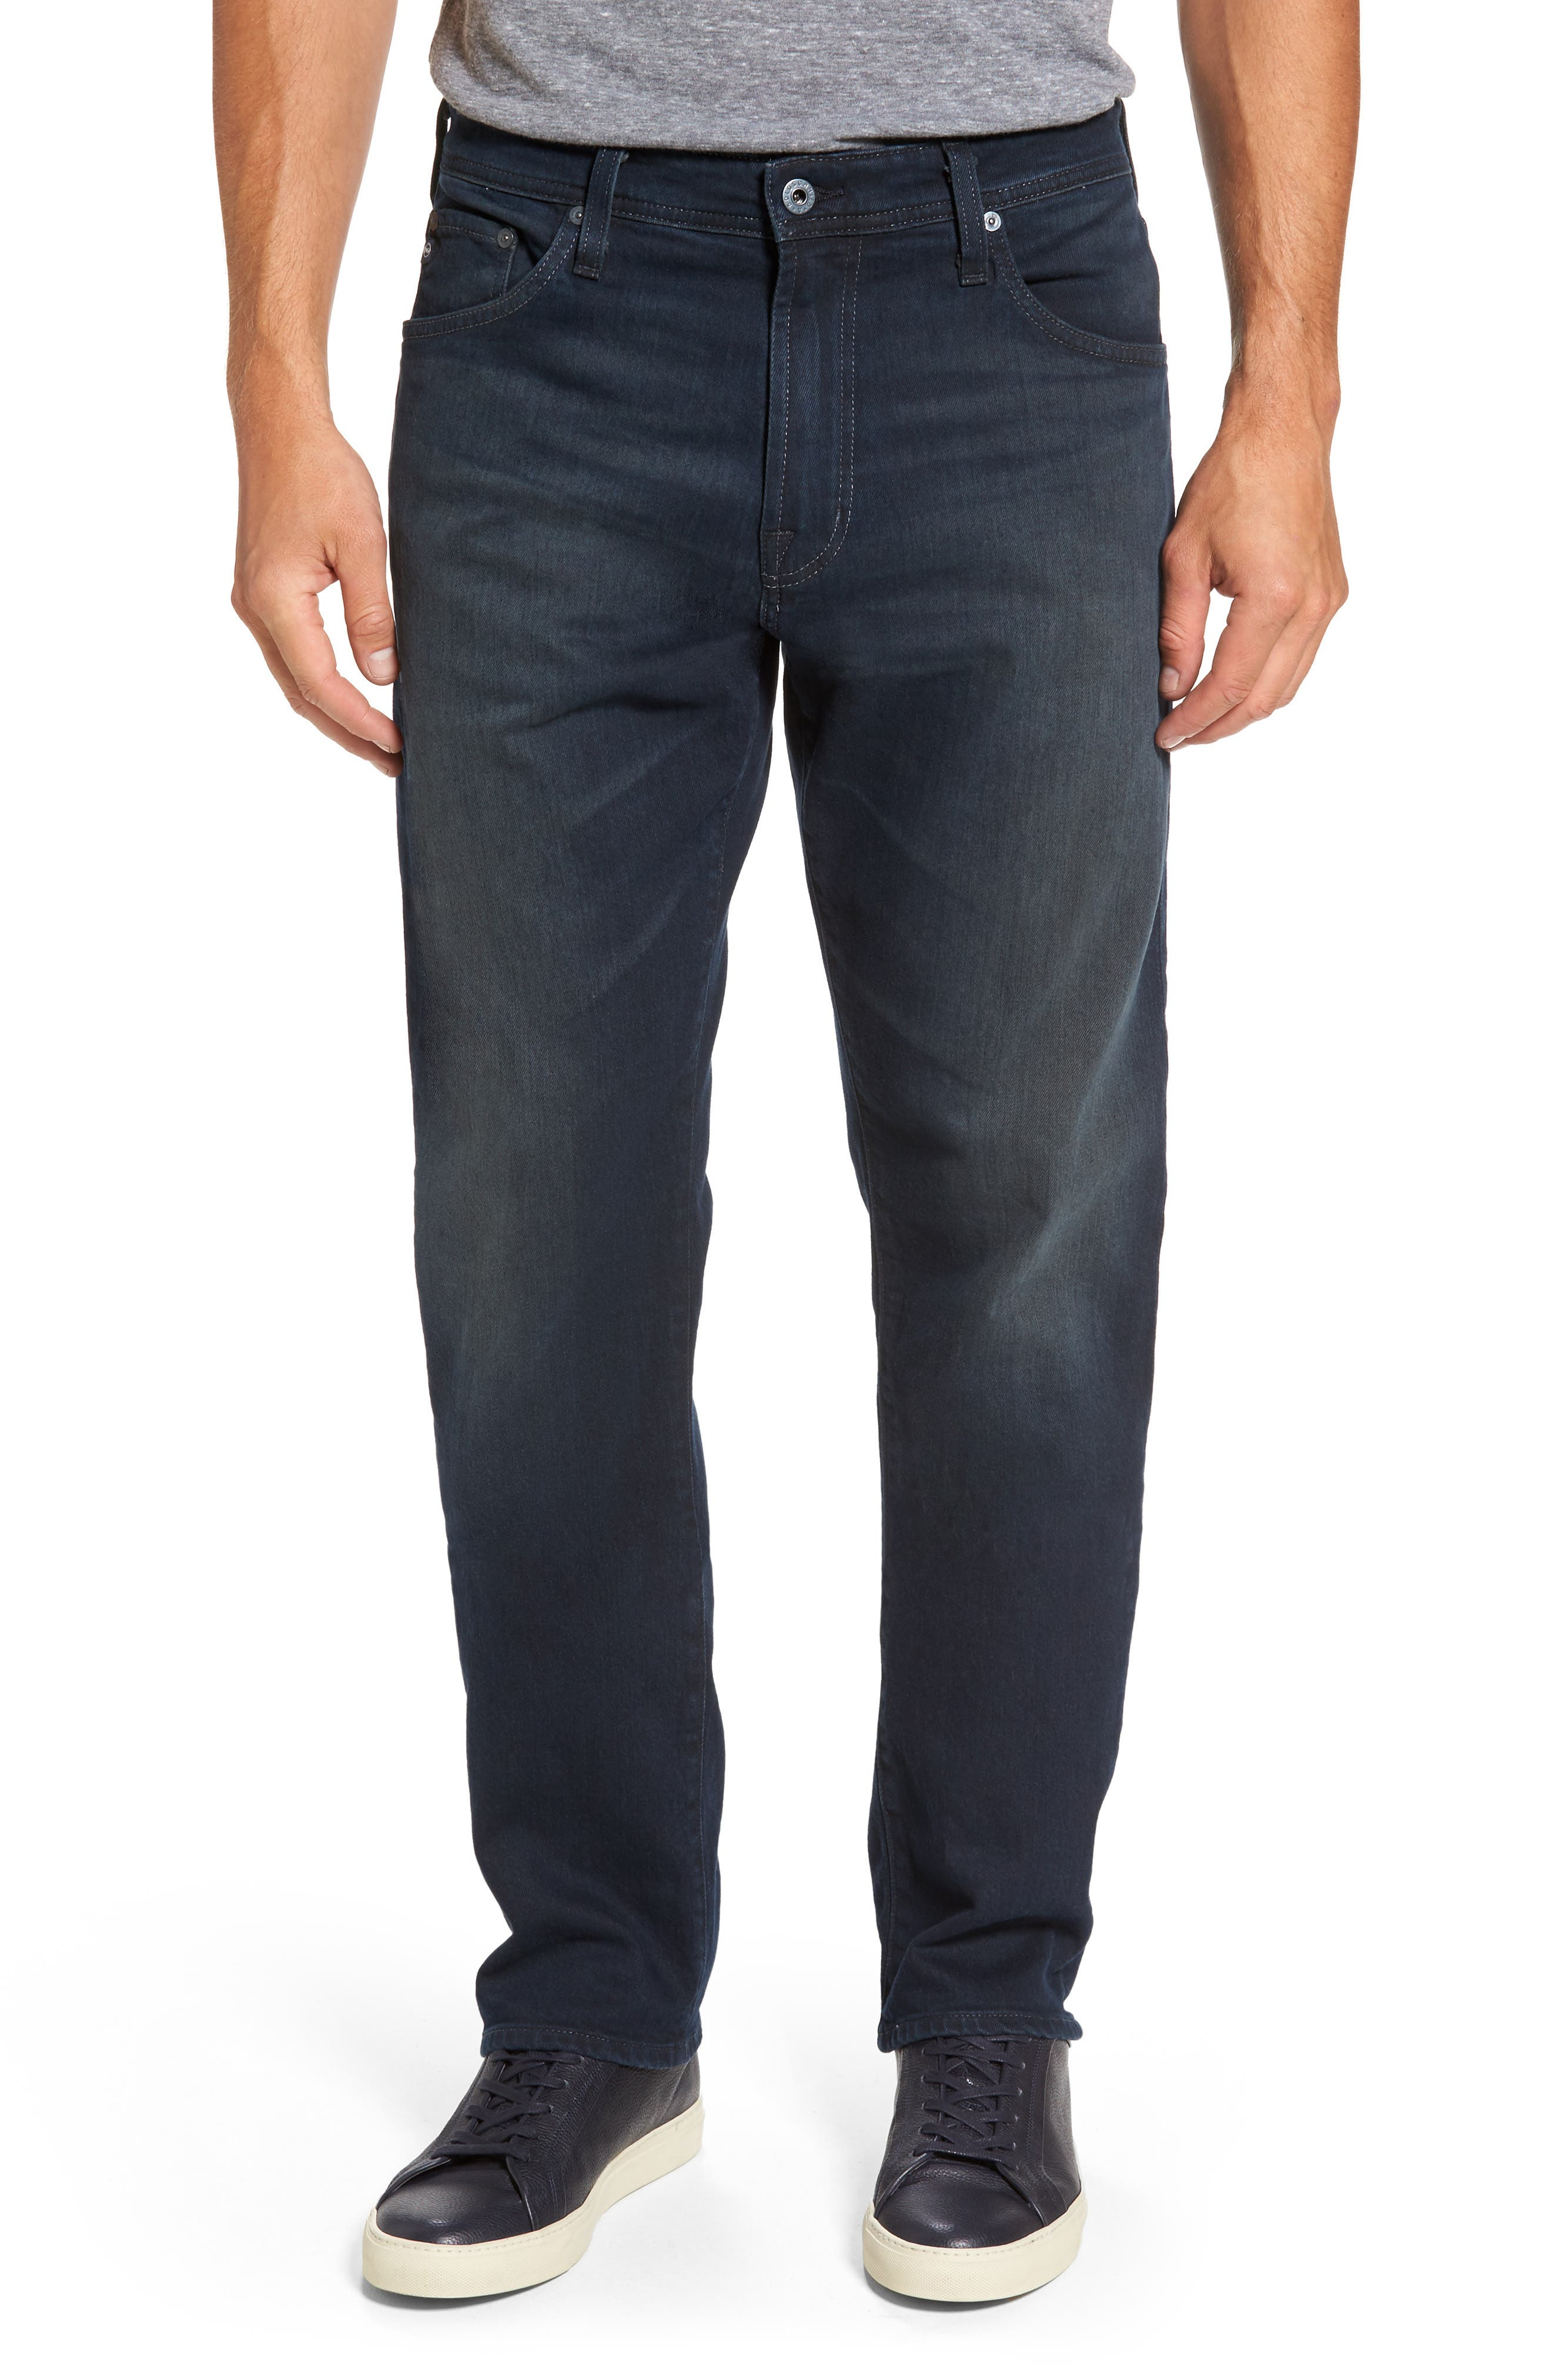 Ives Straight Fit Jeans,                         Main,                         color, 433